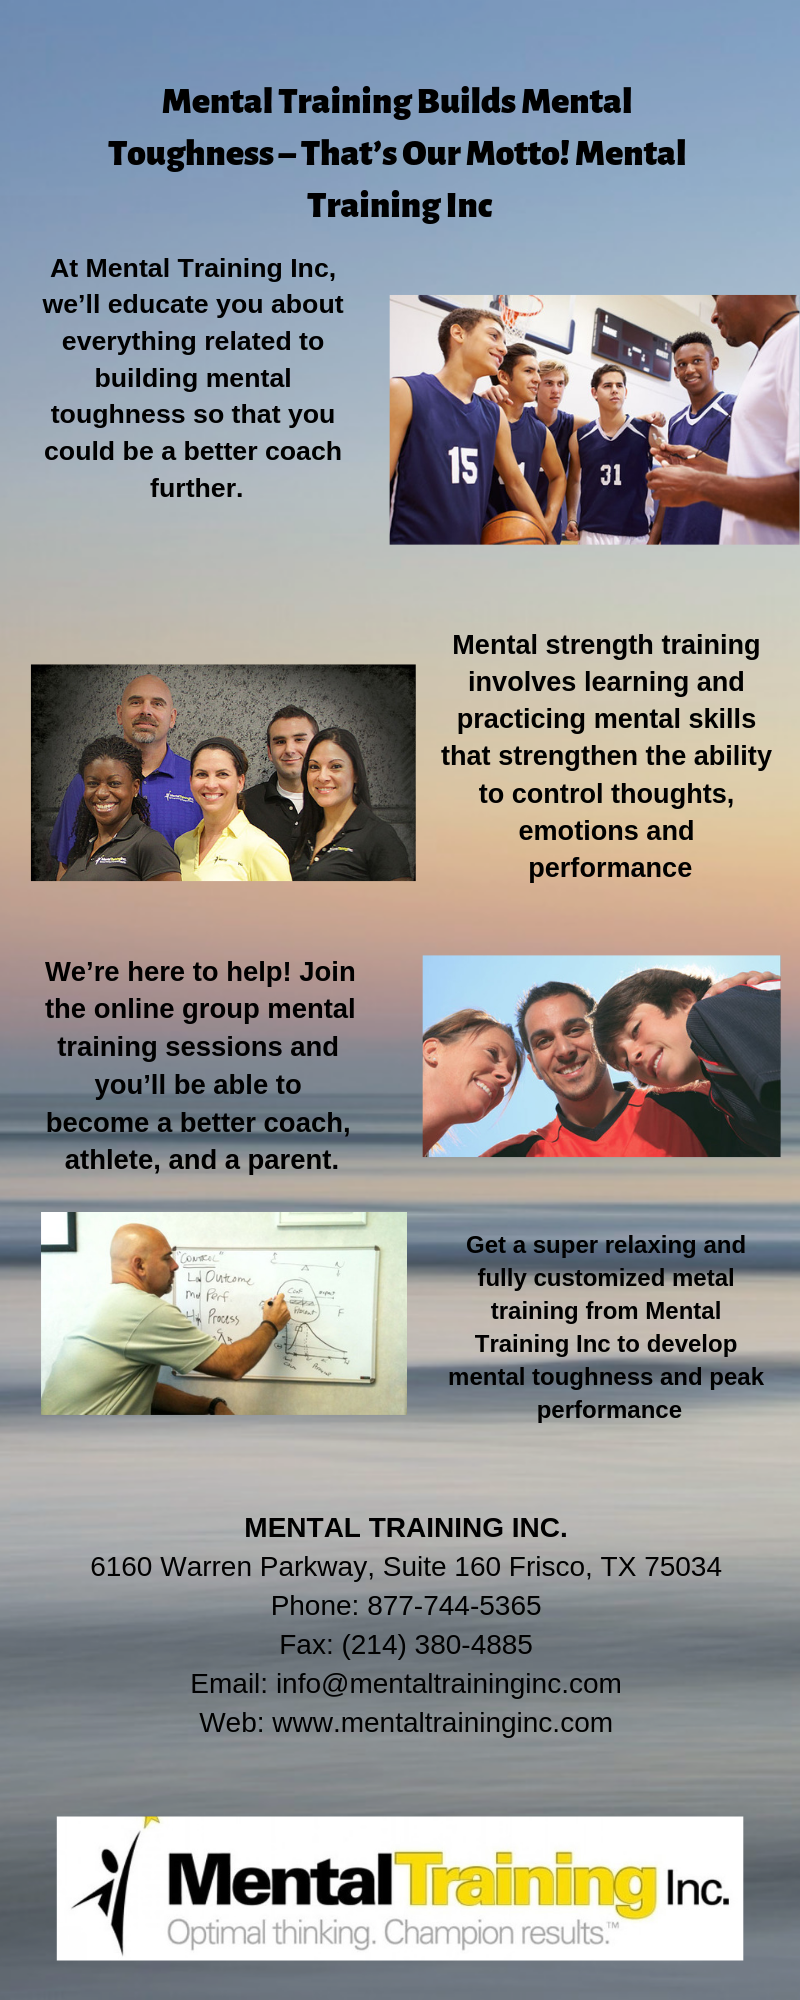 Mental Training Builds Mental ToughnessThat's Our Motto